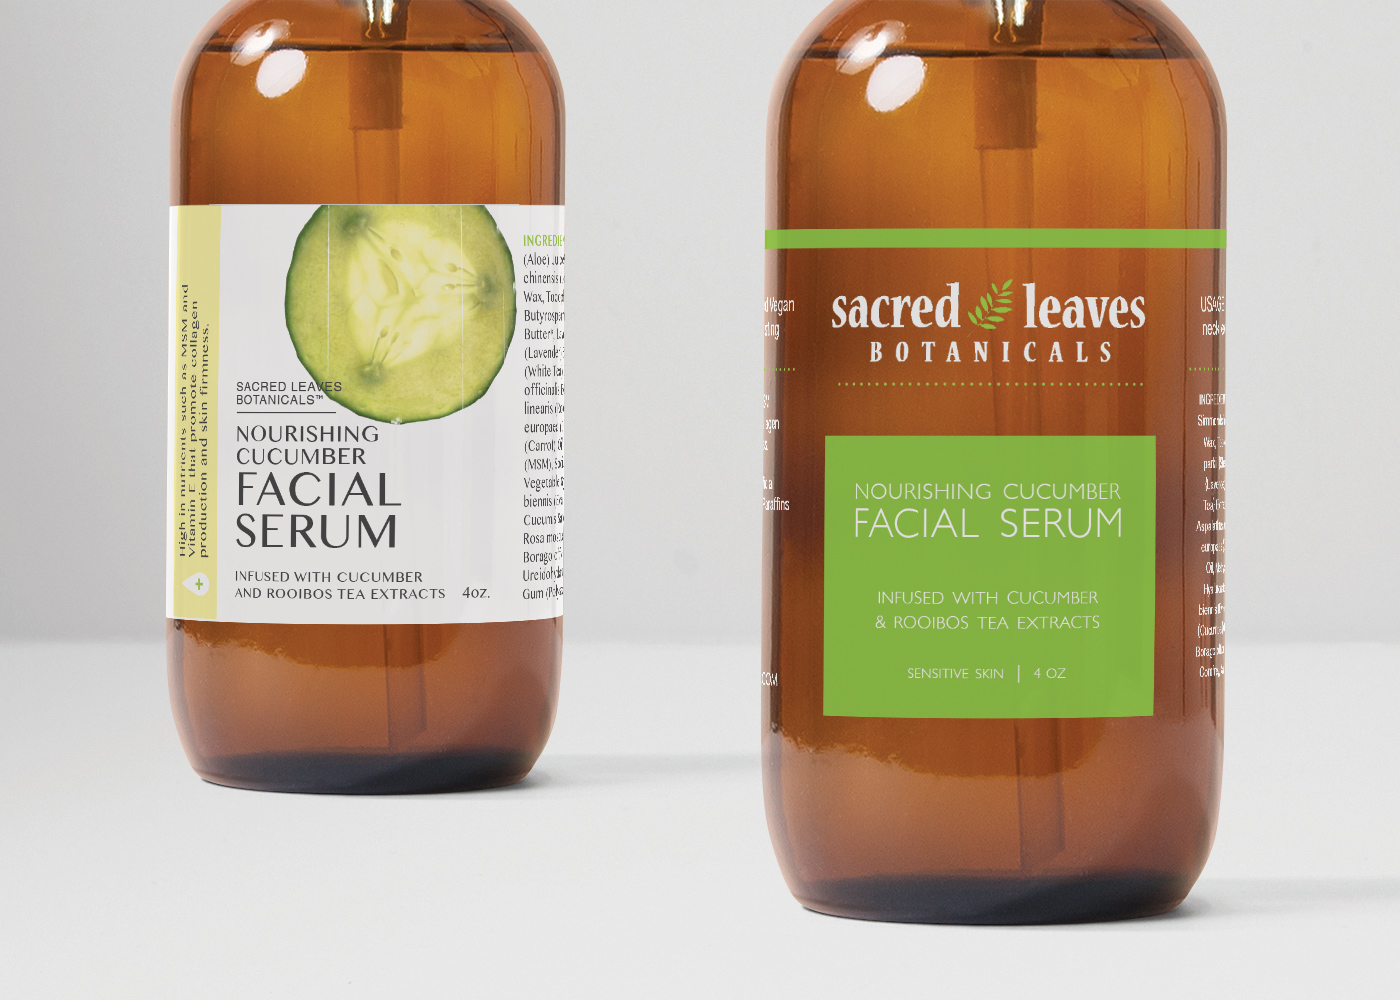 Sacred Leaves Botanicals Packaging